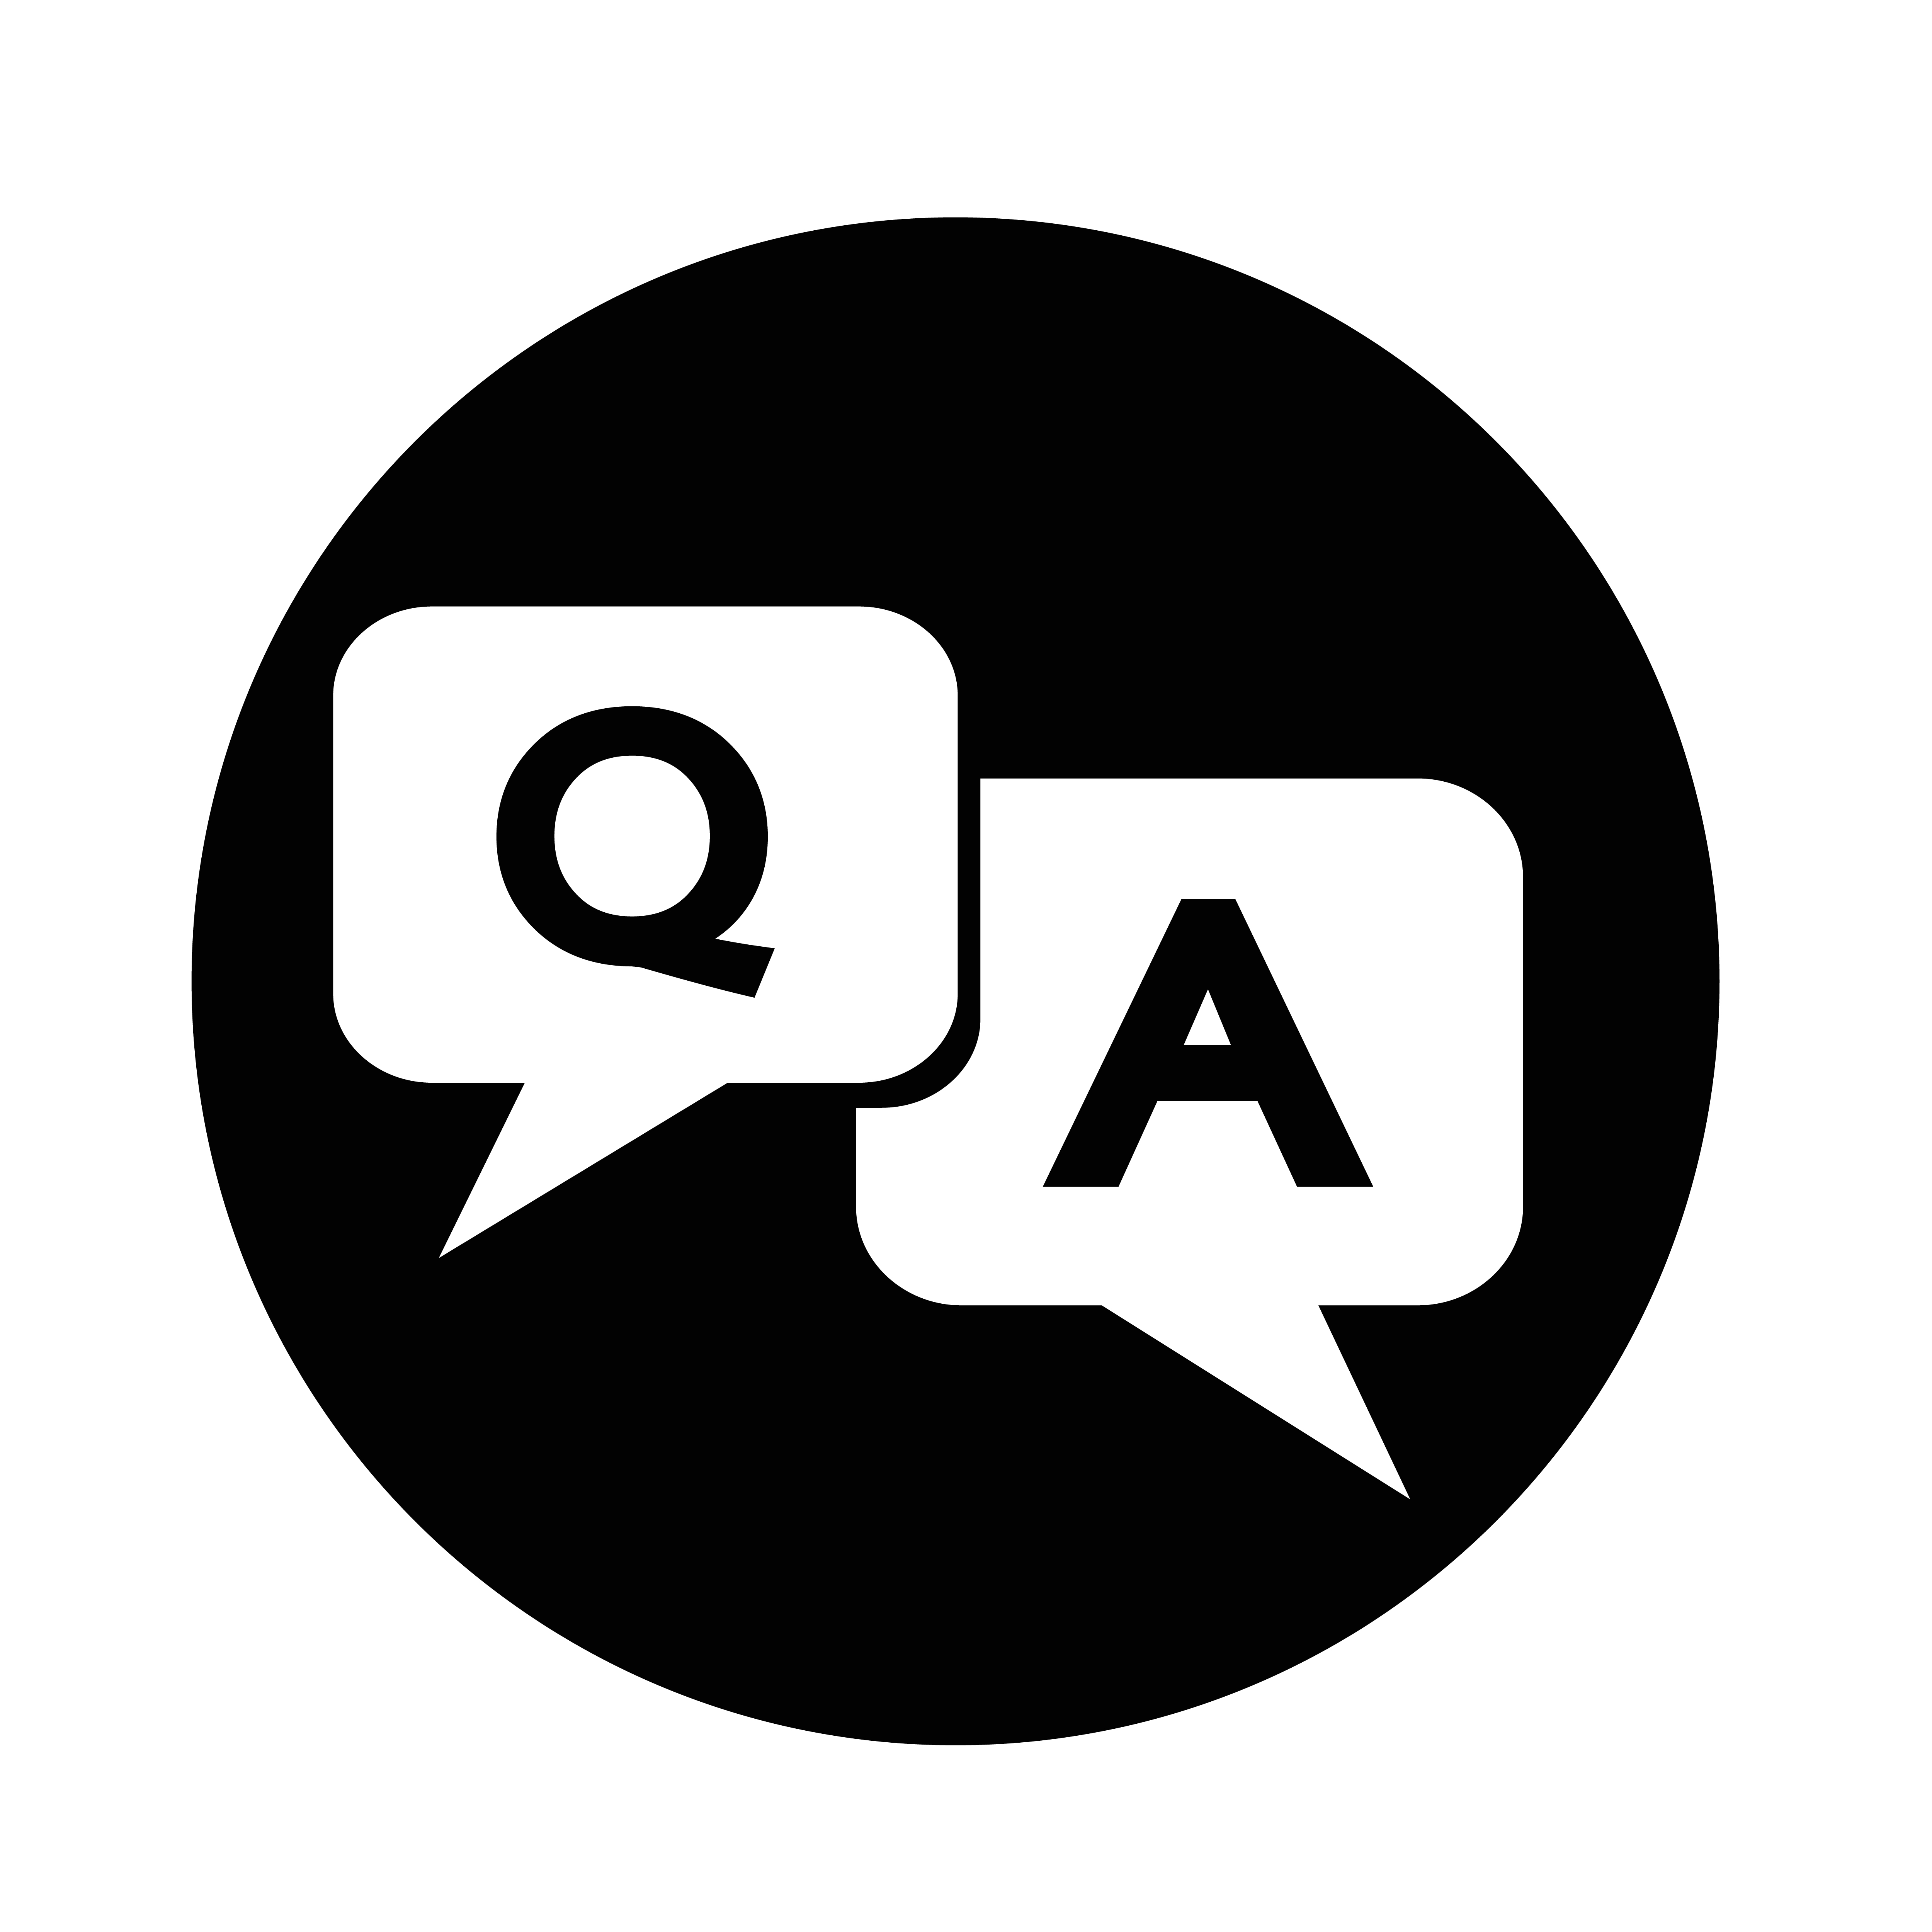 Question answer icon - Download Free Vectors, Clipart ...